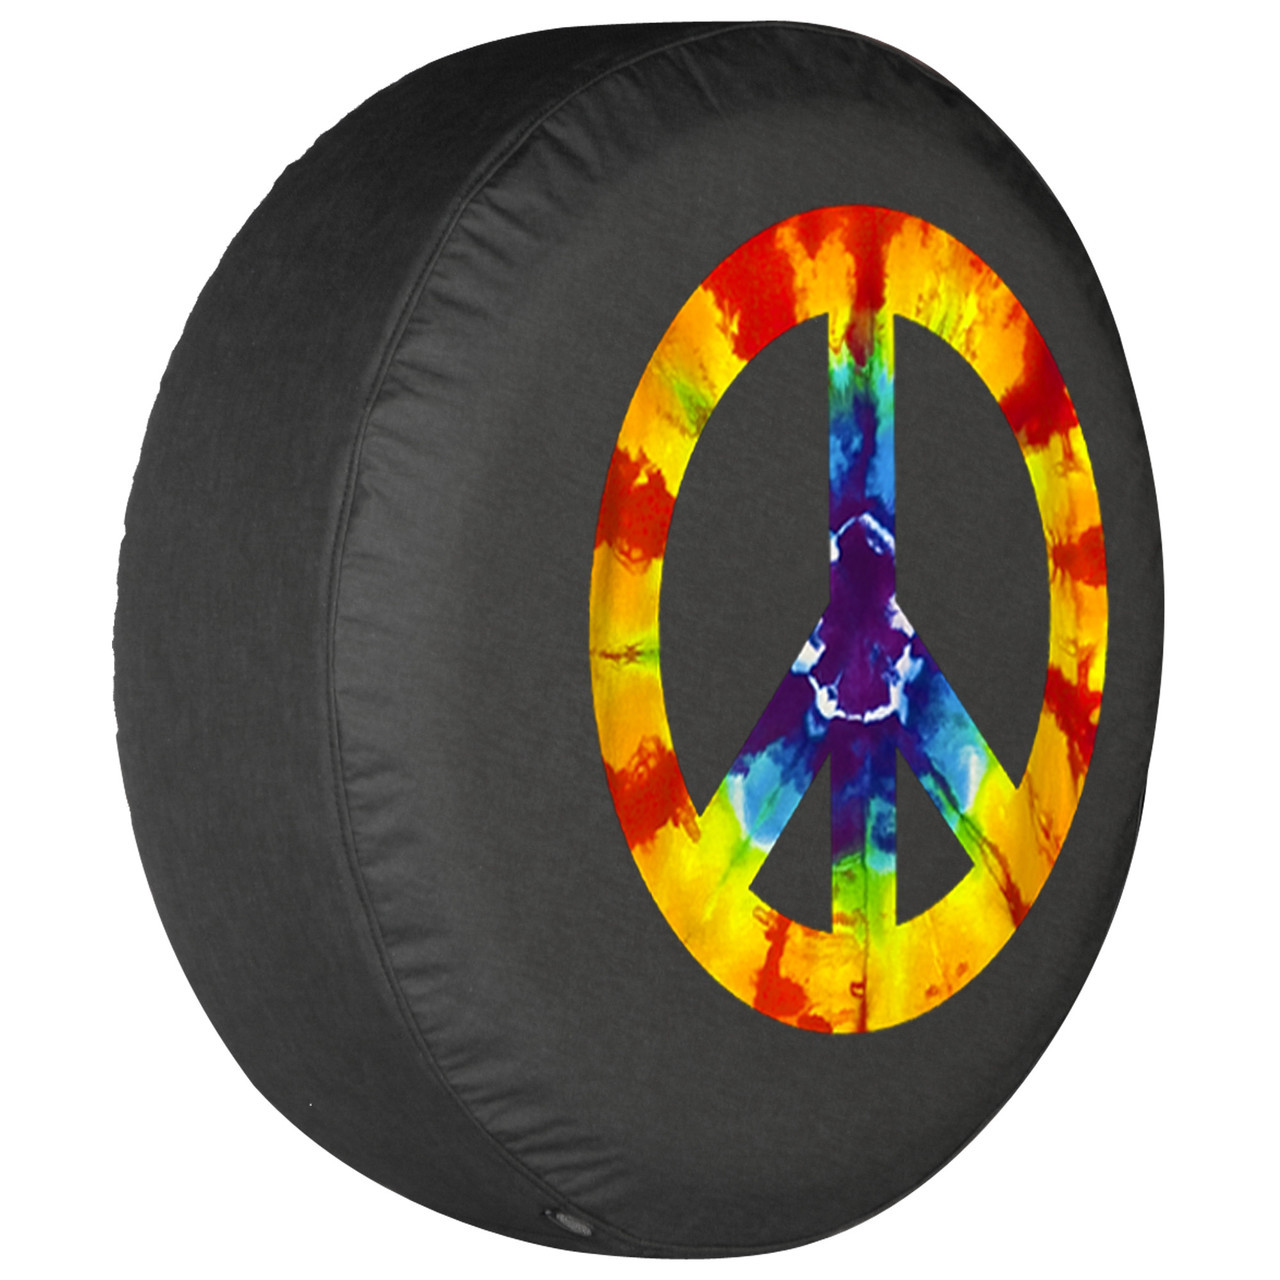 Wildlife Series Bald Eagle Tire Covers Boomerang - Sizes Custom Fit Vehicle